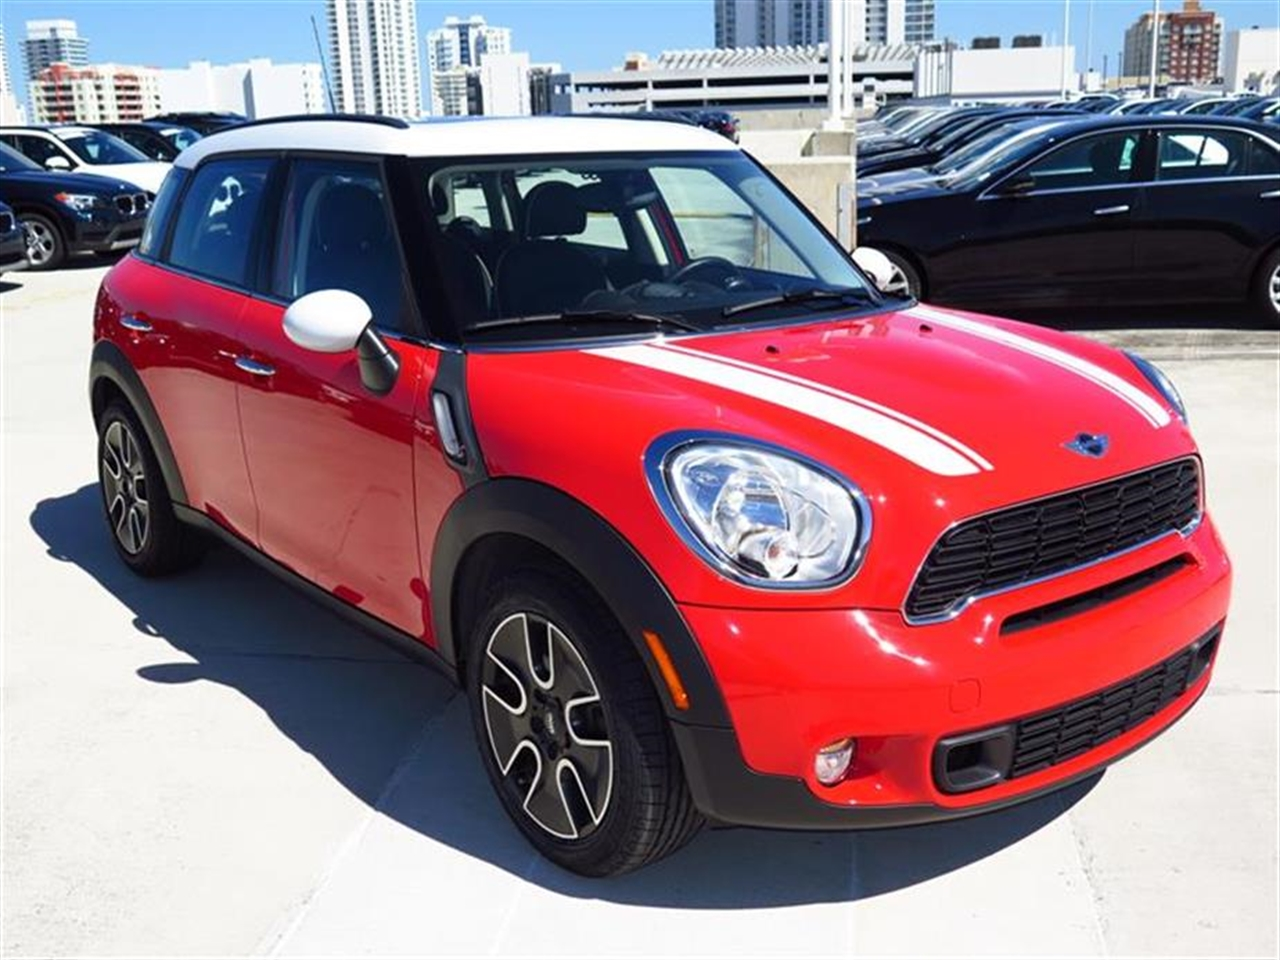 2012 MINI COOPER S COUNTRYMAN FWD 4dr S 12962 miles 2 front cup holders 3 12V pwr outlets 1-